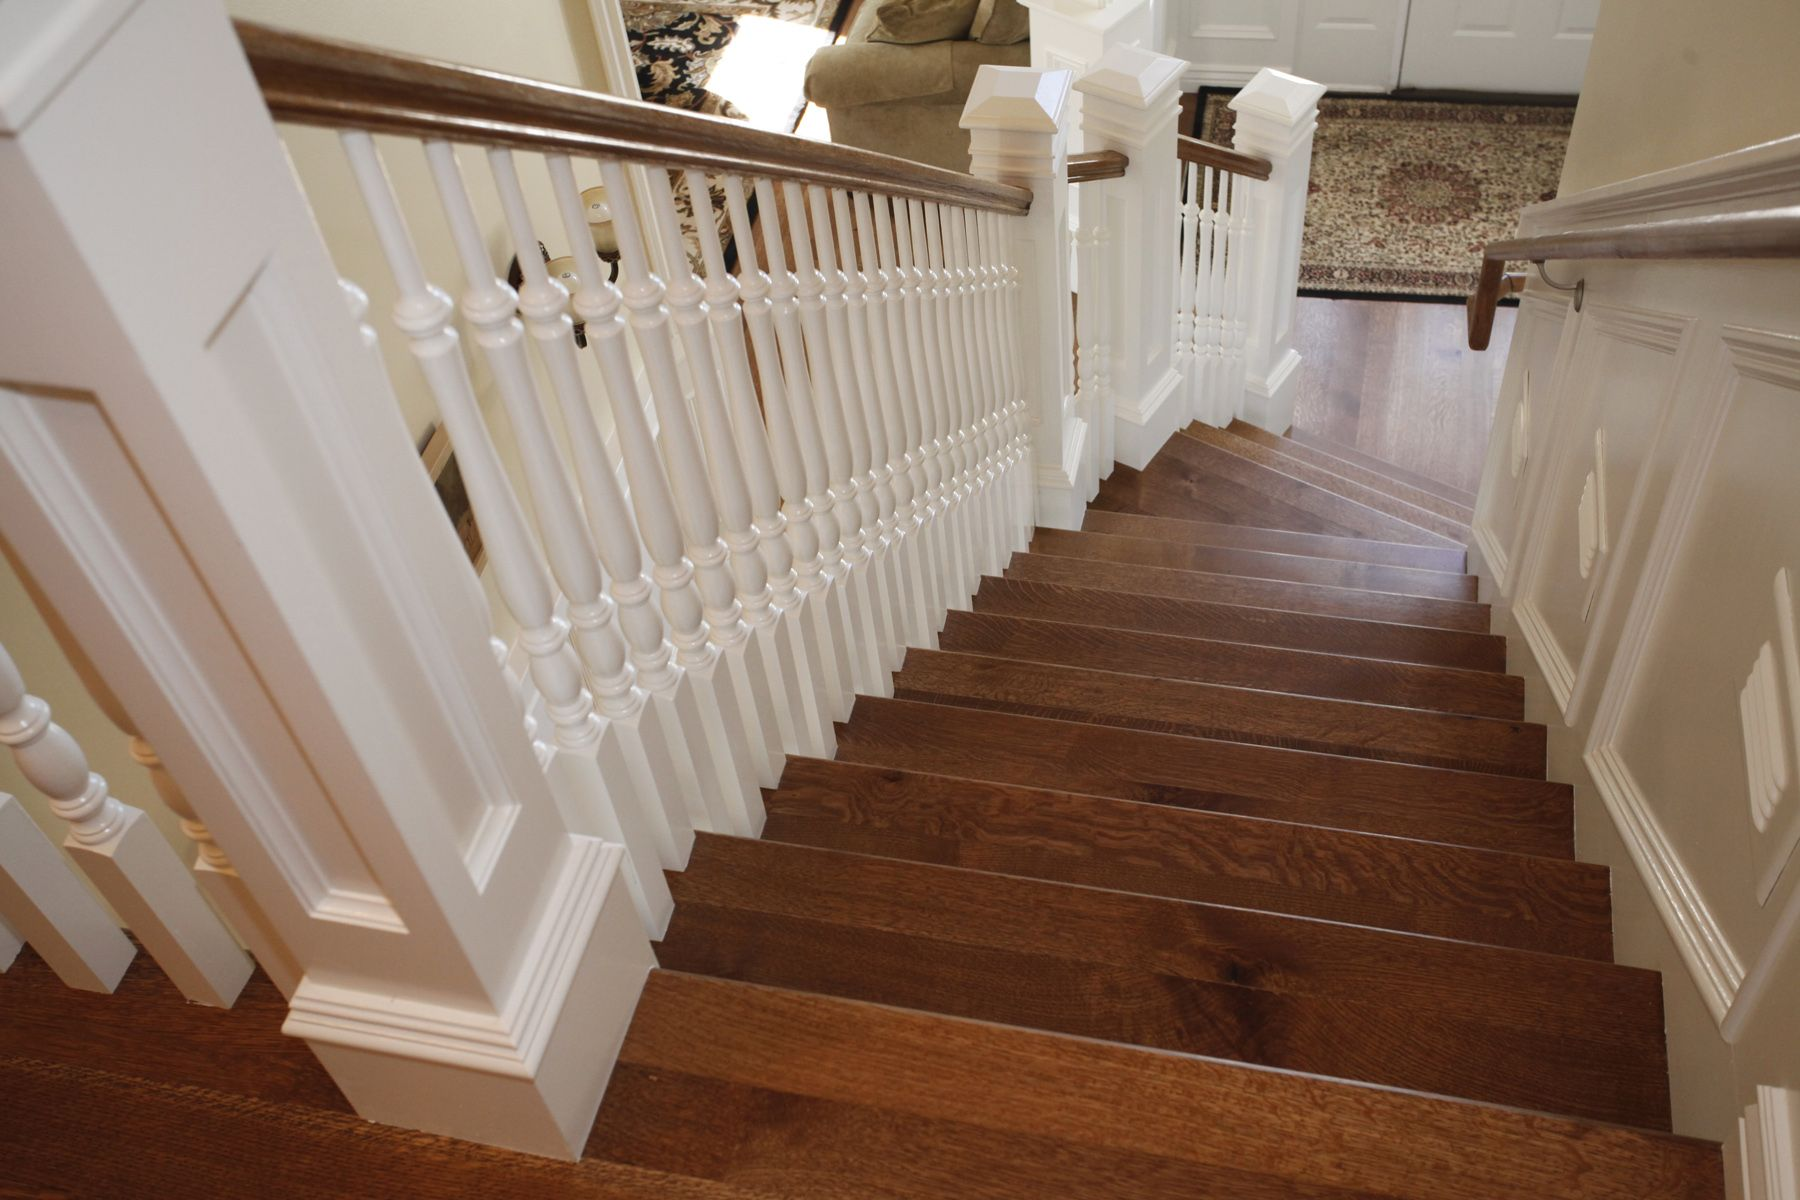 Hardwood On Stairs See Wood Railing At Http://awoodrailing.com